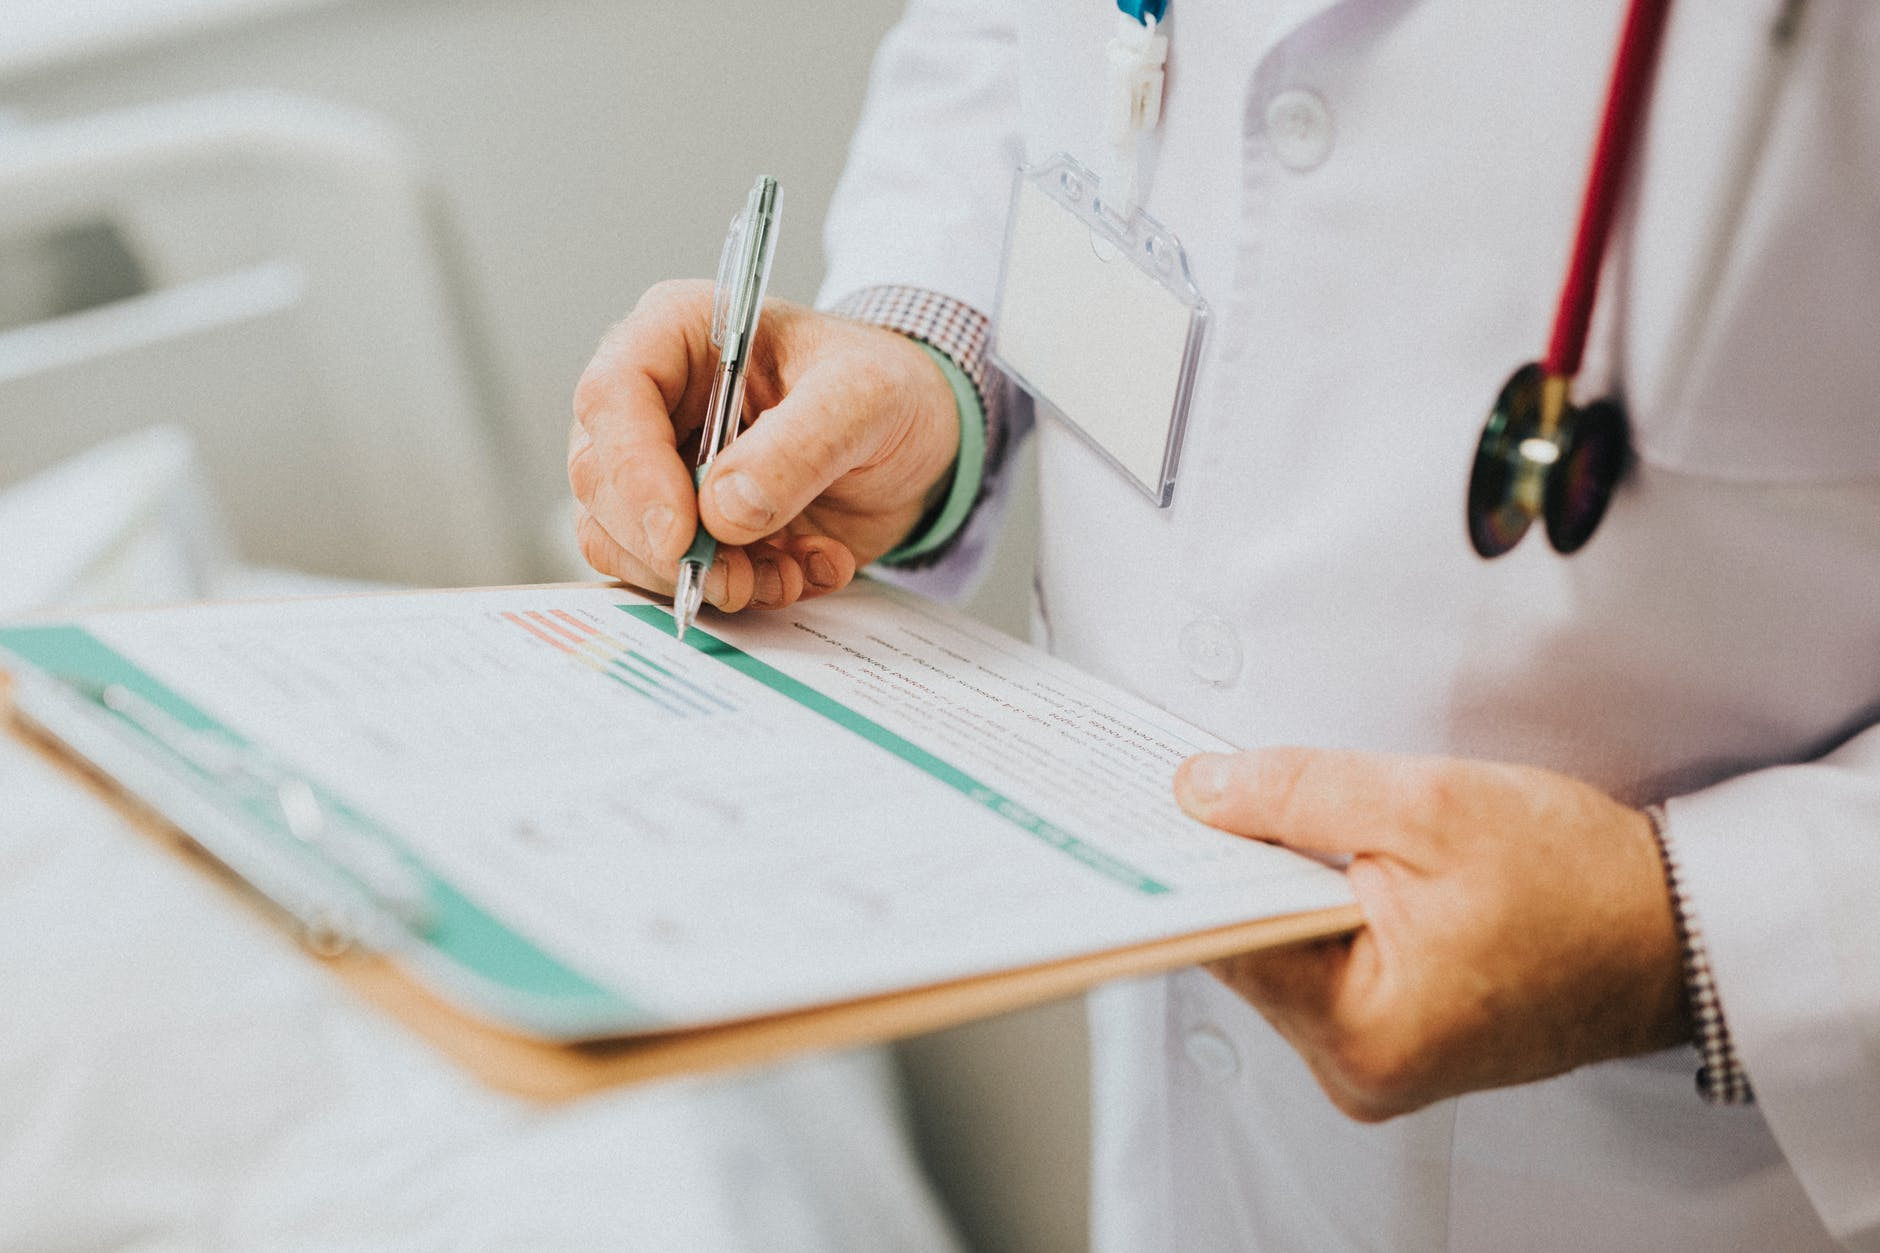 Medical practitioners and health scientists must lean the AMA guidelines for ease of communication with their colleagues